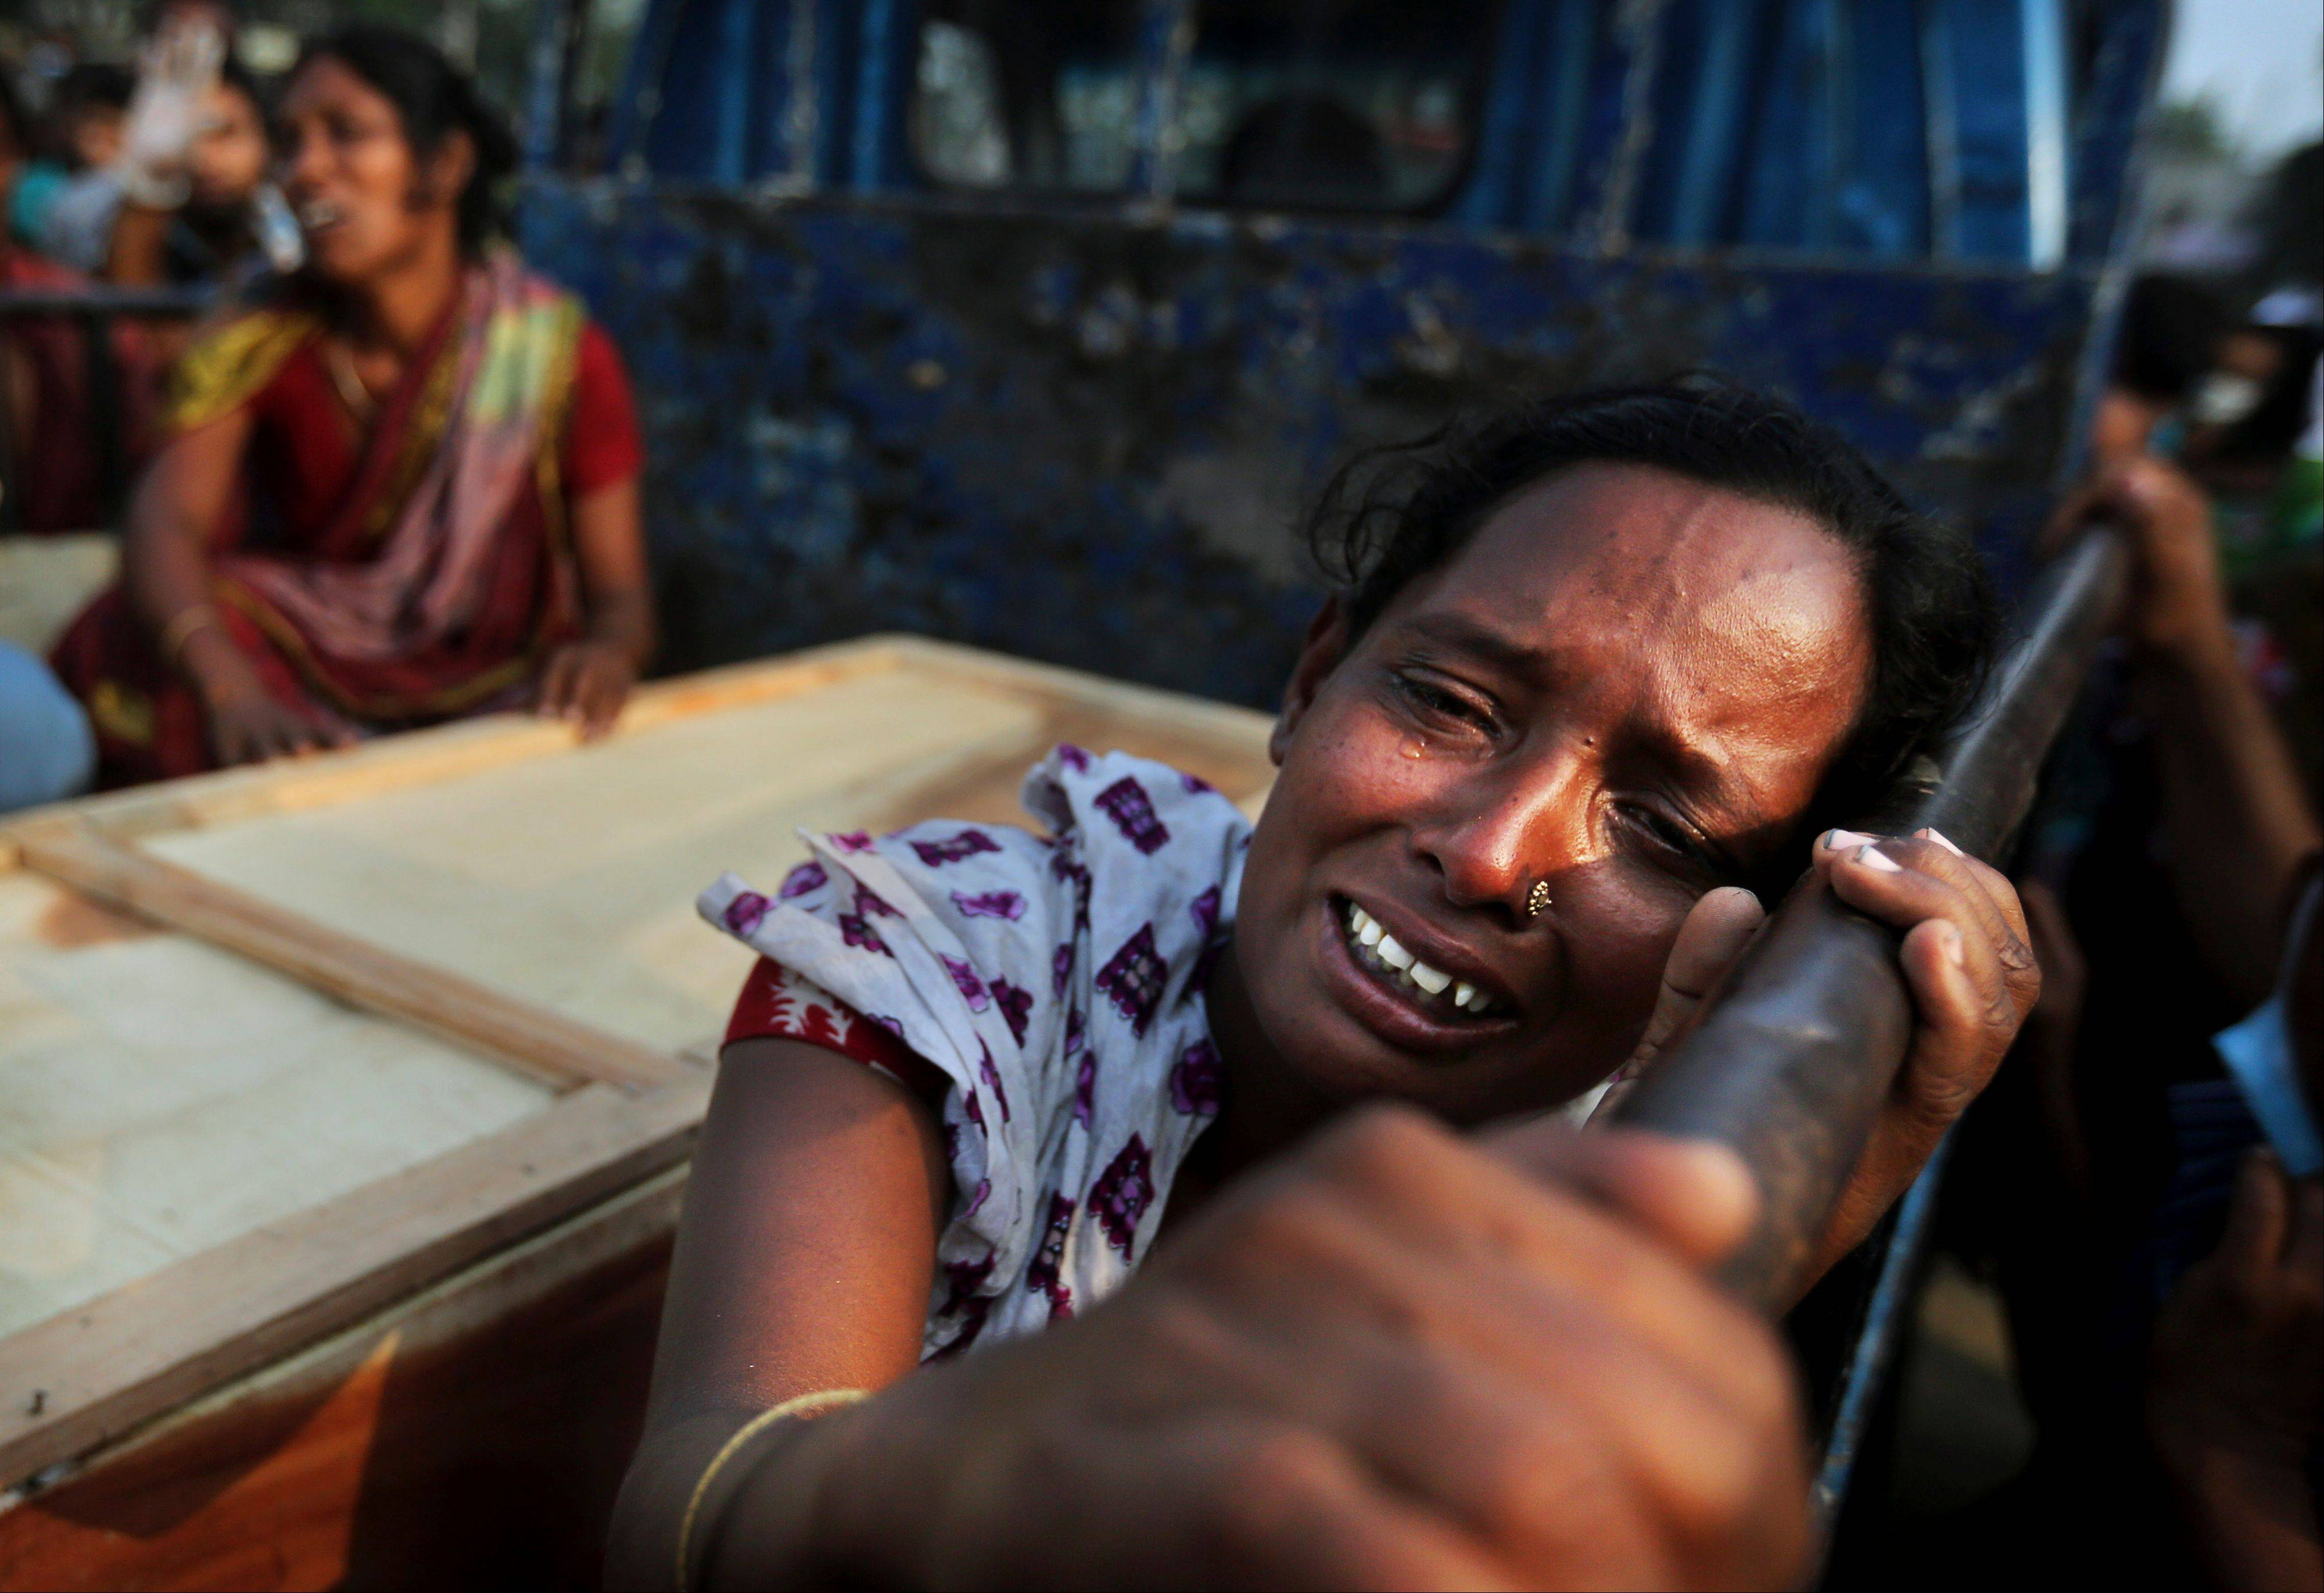 A Bangladeshi woman weeps as she sits next to the coffin of a relative who died in a building that collapsed Wednesday in Savar, near Dhaka, Bangladesh, Sunday. A fire broke out late Sunday in the wreckage of the garment factory that collapsed last week in Bangladesh killing hundreds, with smoke pouring from the piles of shattered concrete and some of the rescue efforts forced to stop.